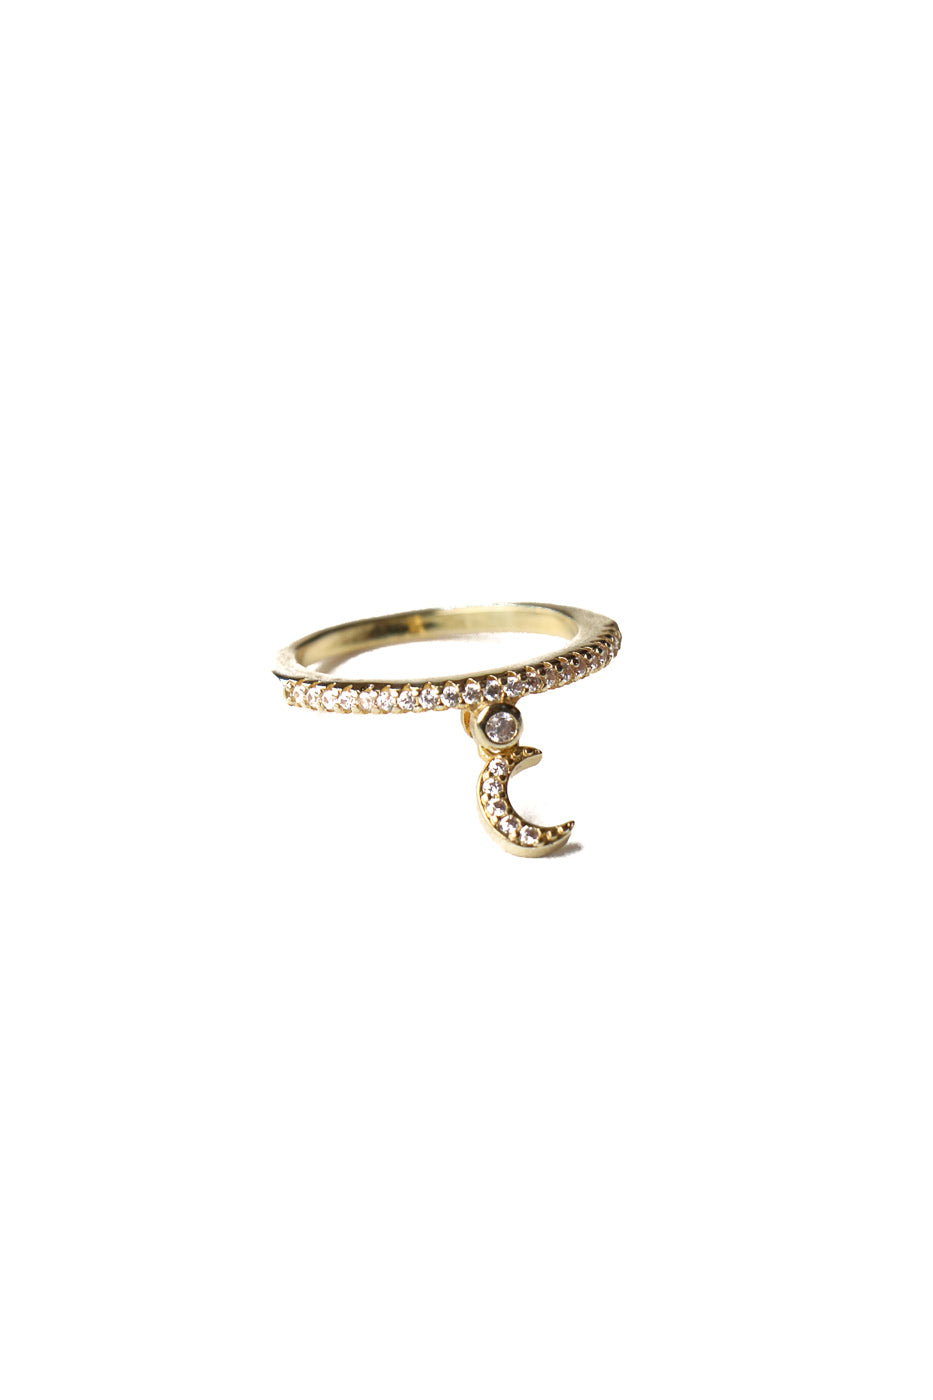 New Moon Ring - 3 sizes